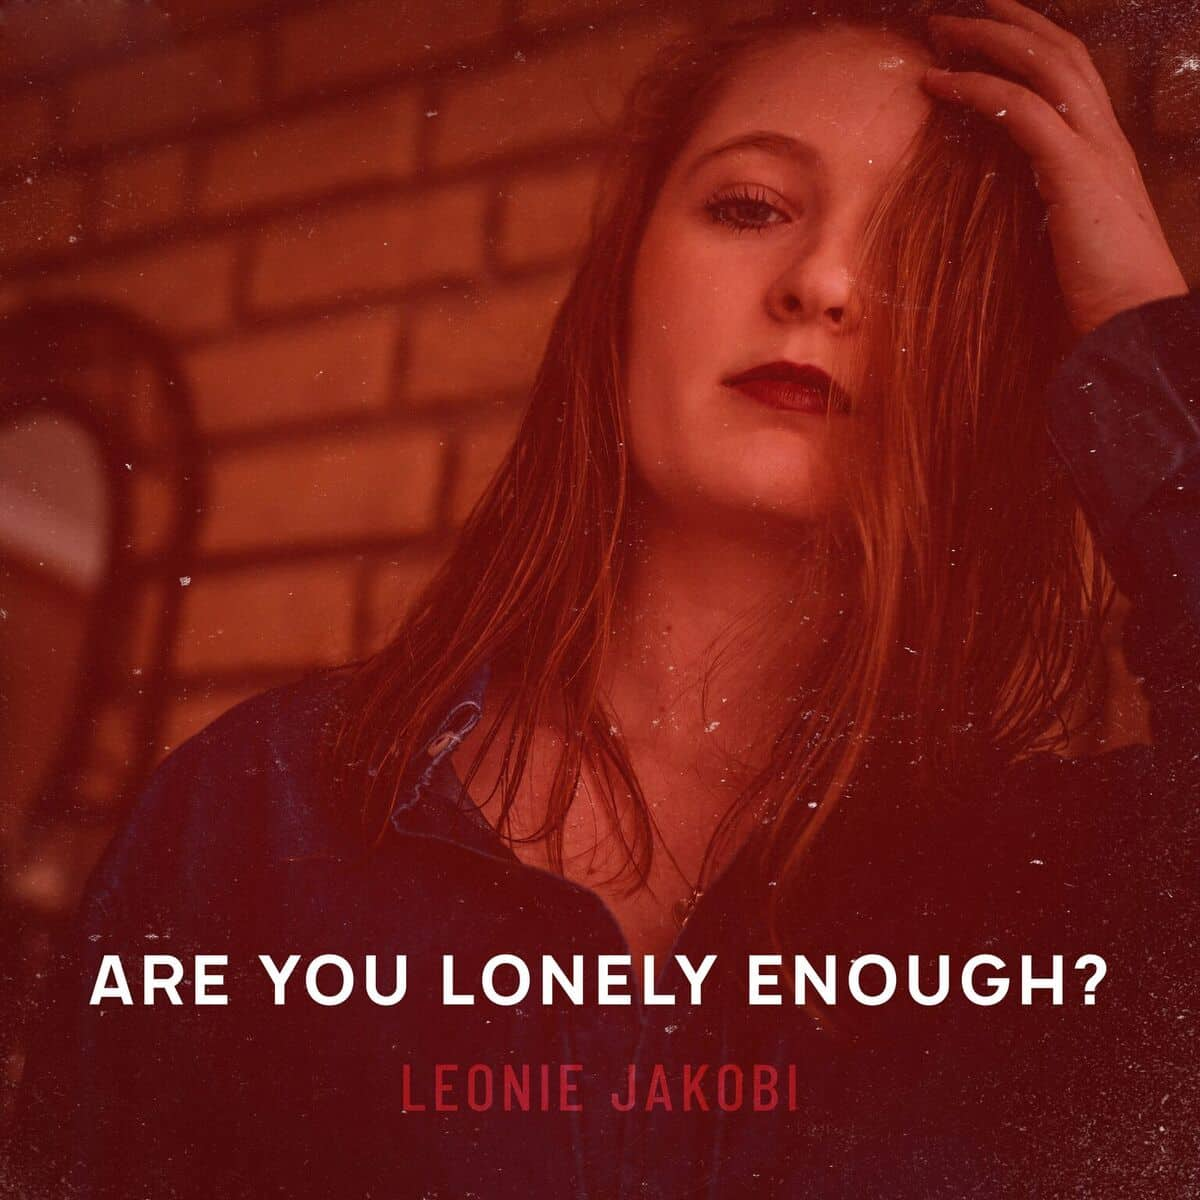 Leonie Jakobi – Are You Lonely Enough?